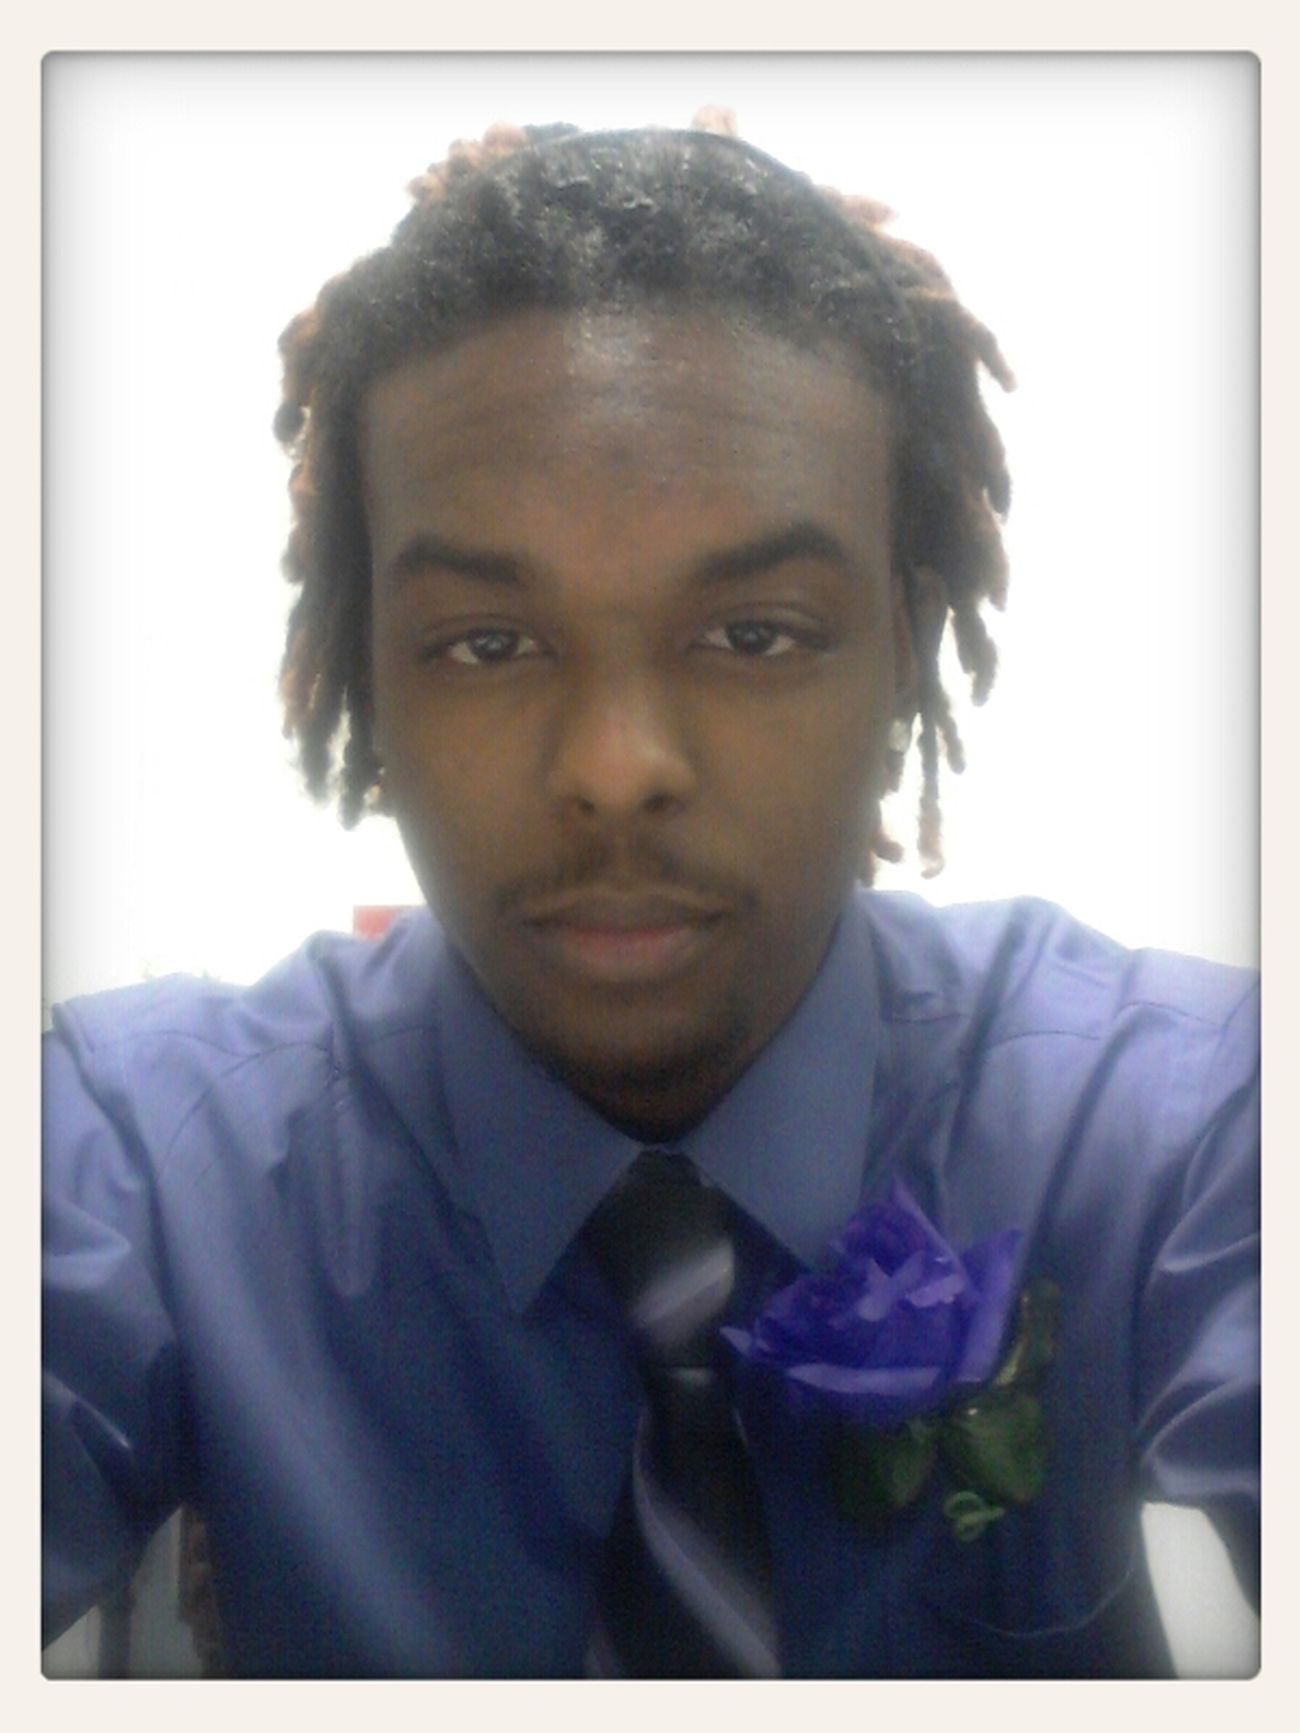 Me At My Brothers #Wedding #Dreads #DreadHead